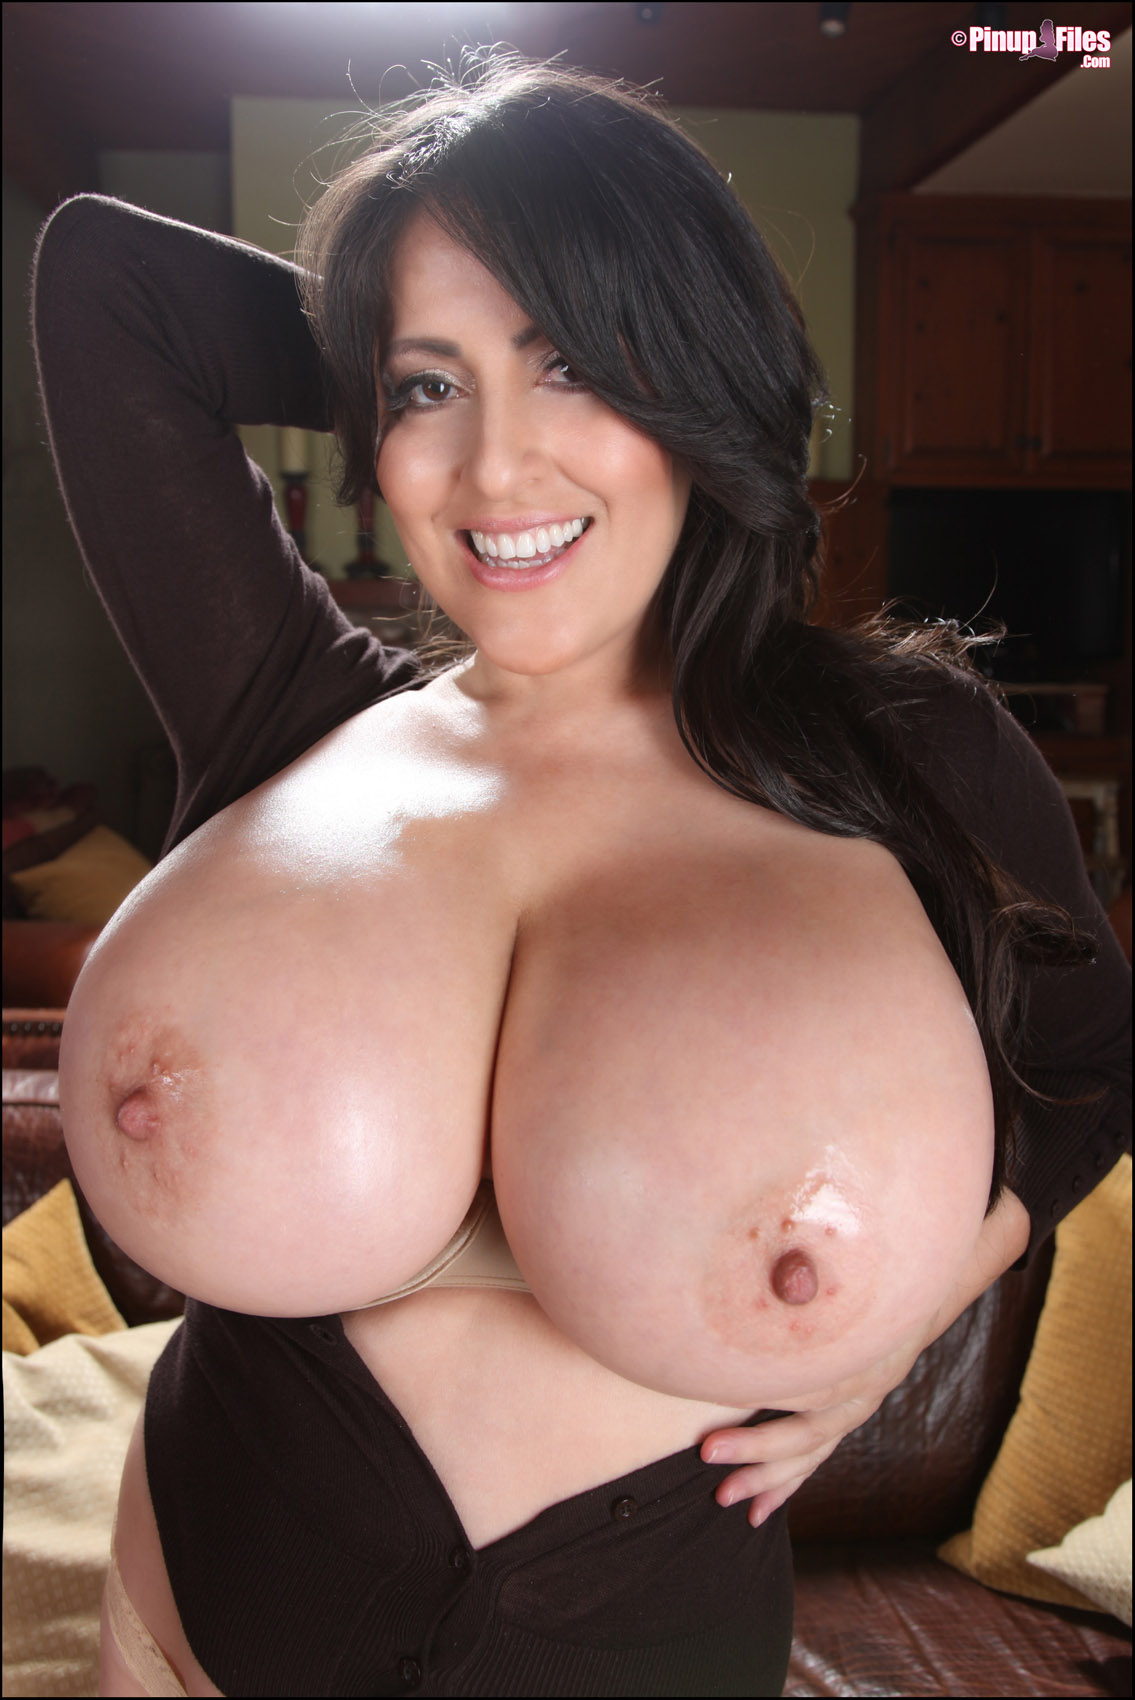 Big boobs images in fuckin mod sexy pic